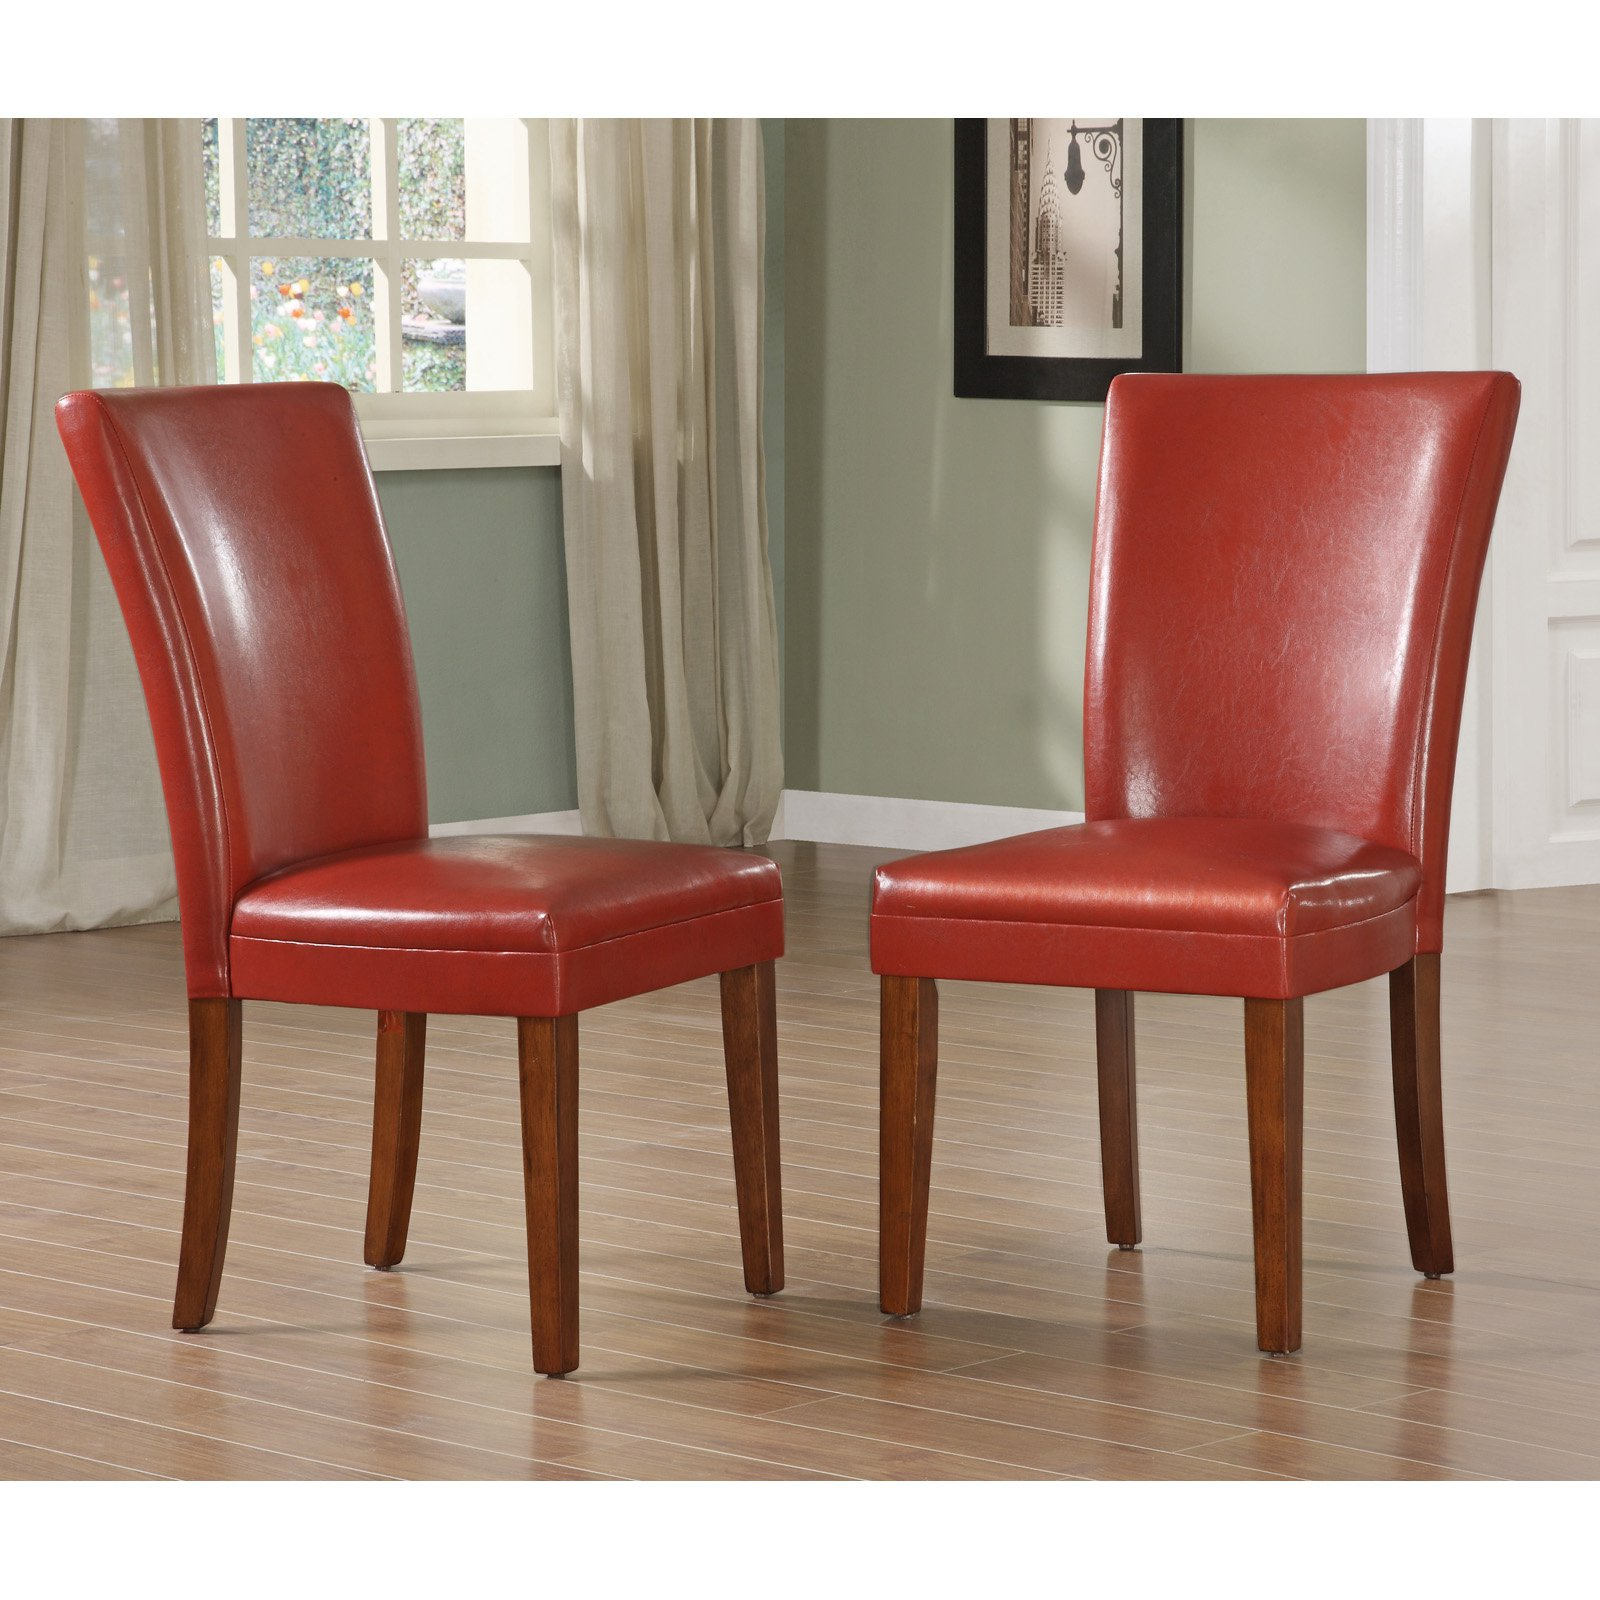 Homelegance Achillea Red Parsons Chair - Set of 2